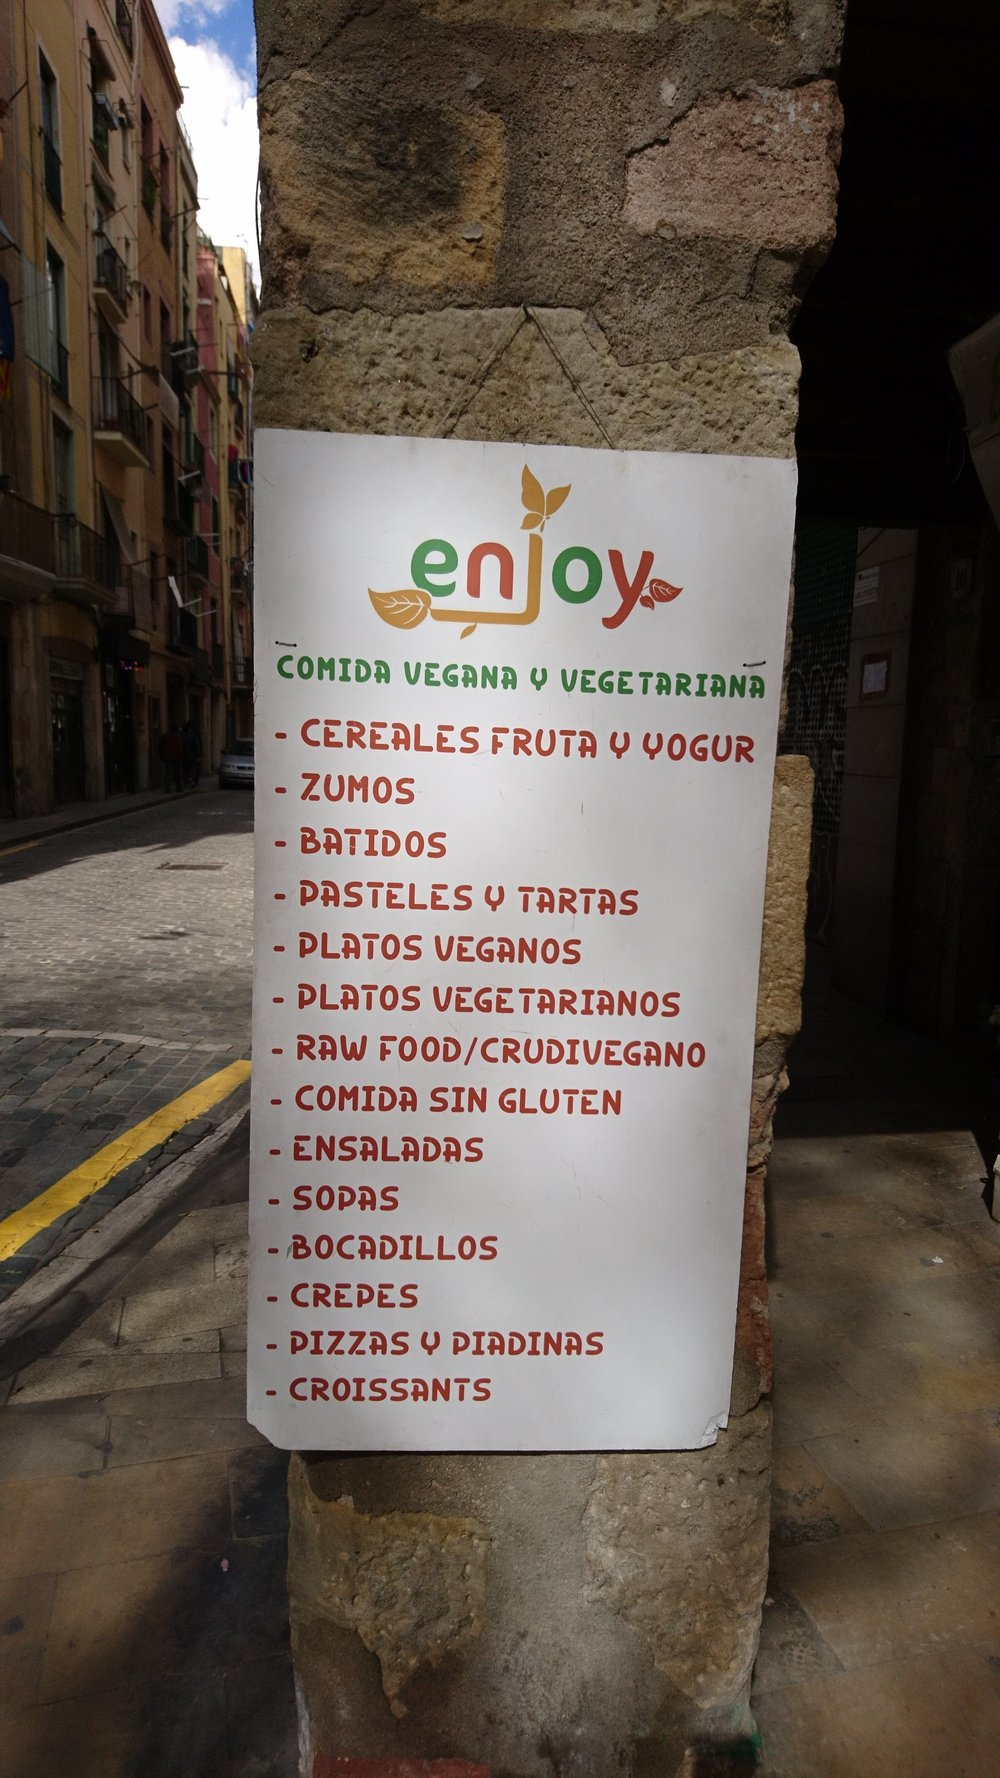 Enjoy Vegan